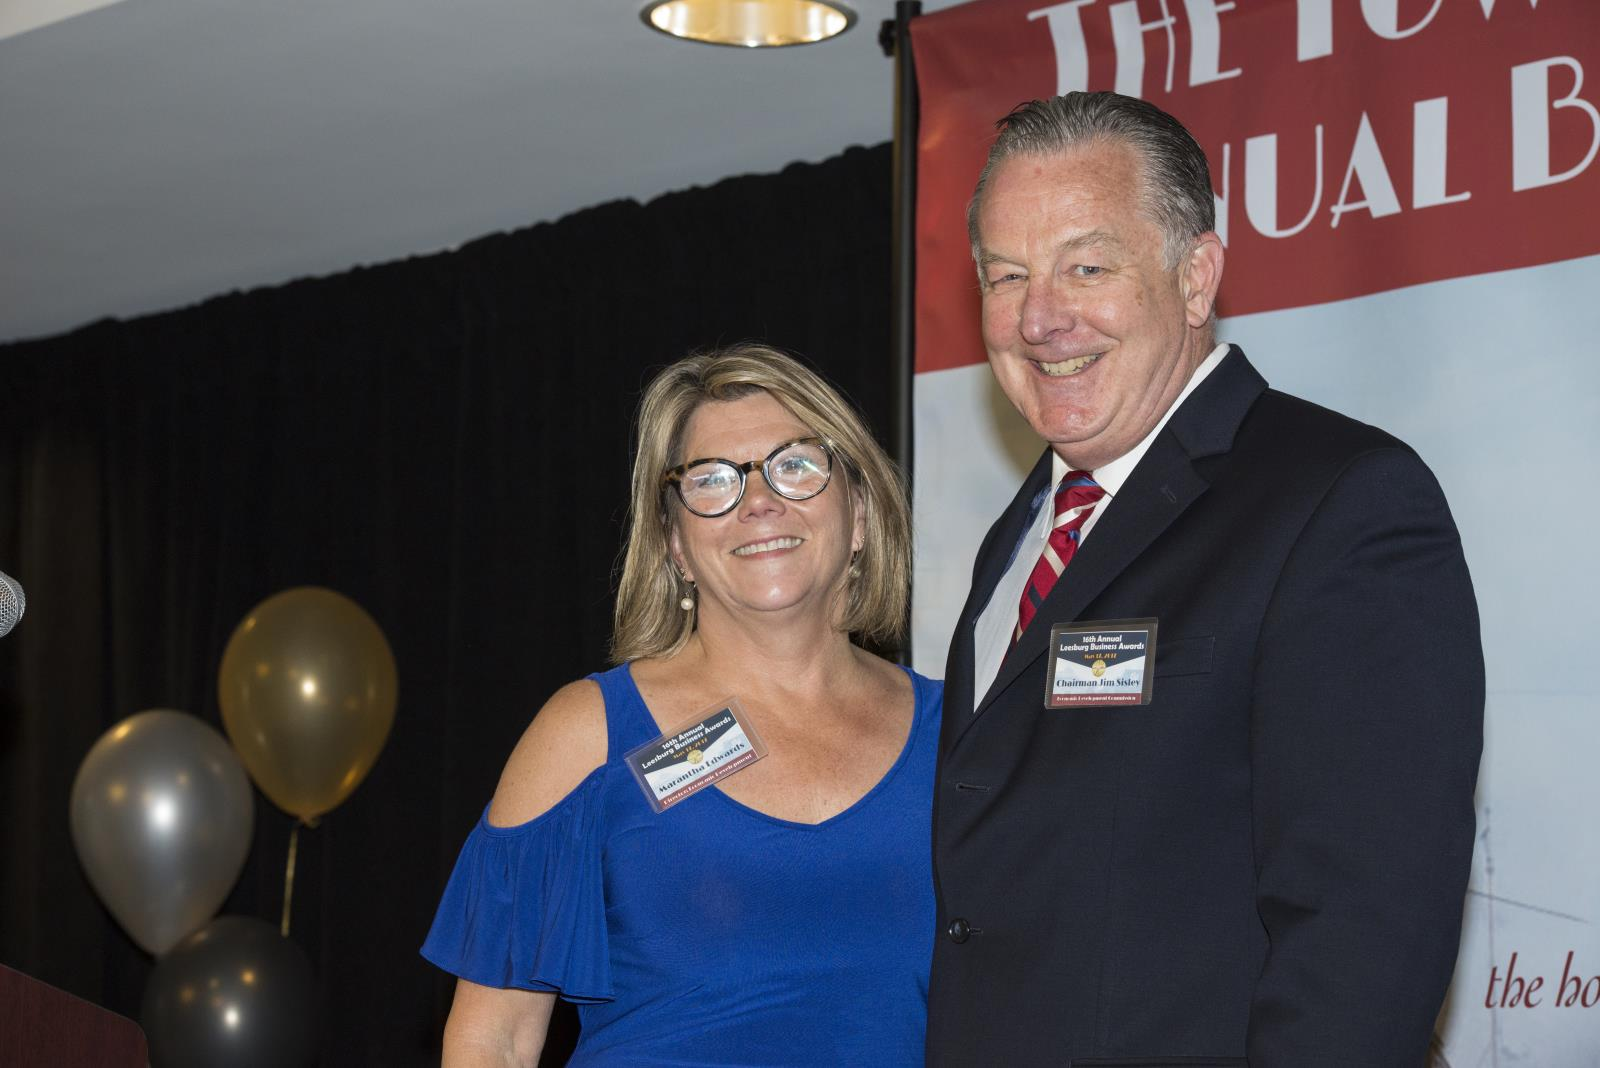 Marantha Edwards and Jim Sisley at the 2017 Leesburg Business Awards.